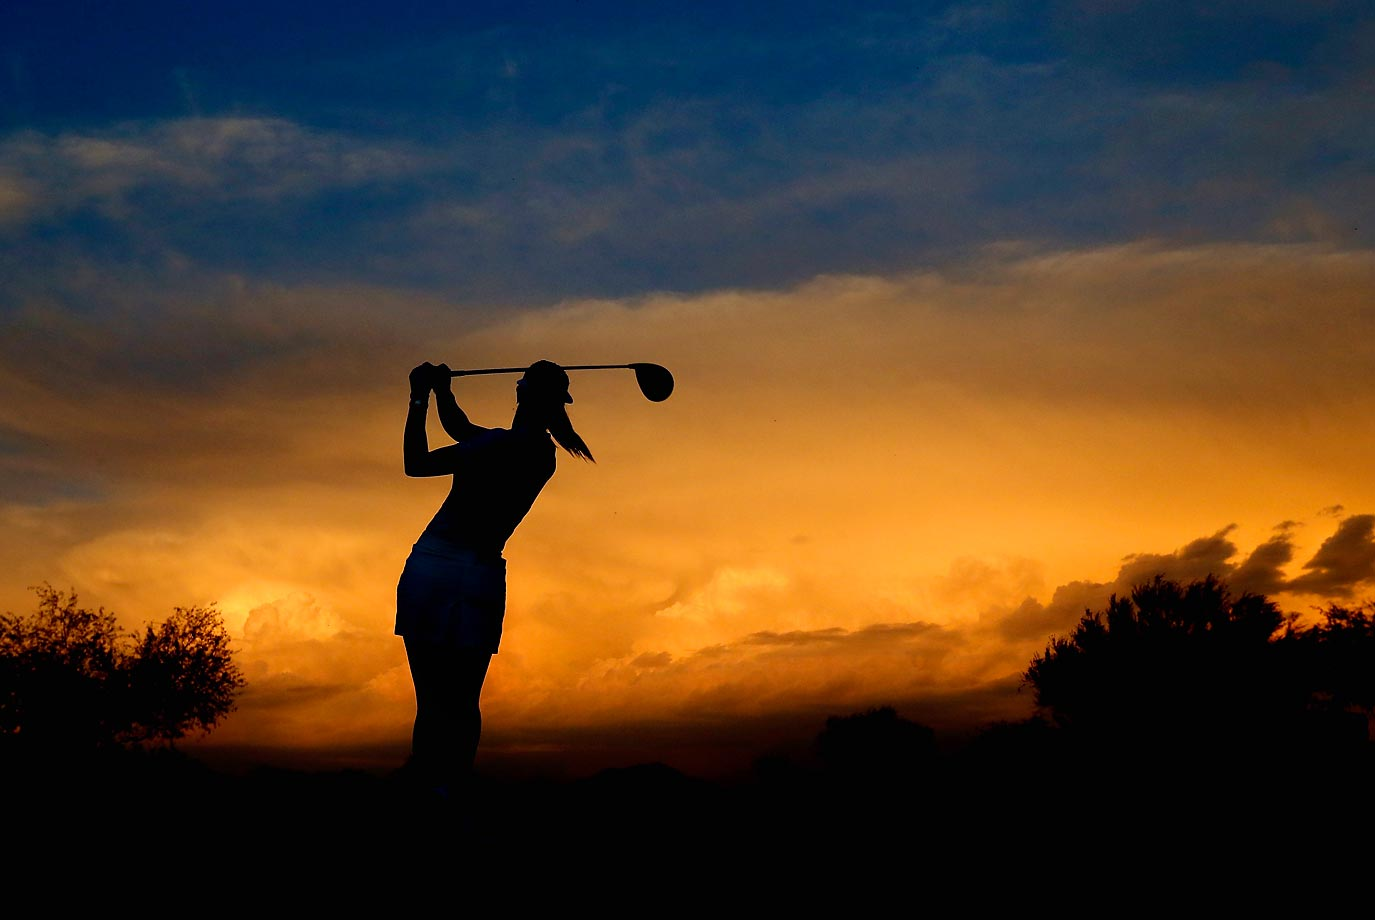 Michelle Wie hits a tee shot on the 10th hole during the second round of the LPGA Founders Cup at Wildfire Golf Club in Phoenix.